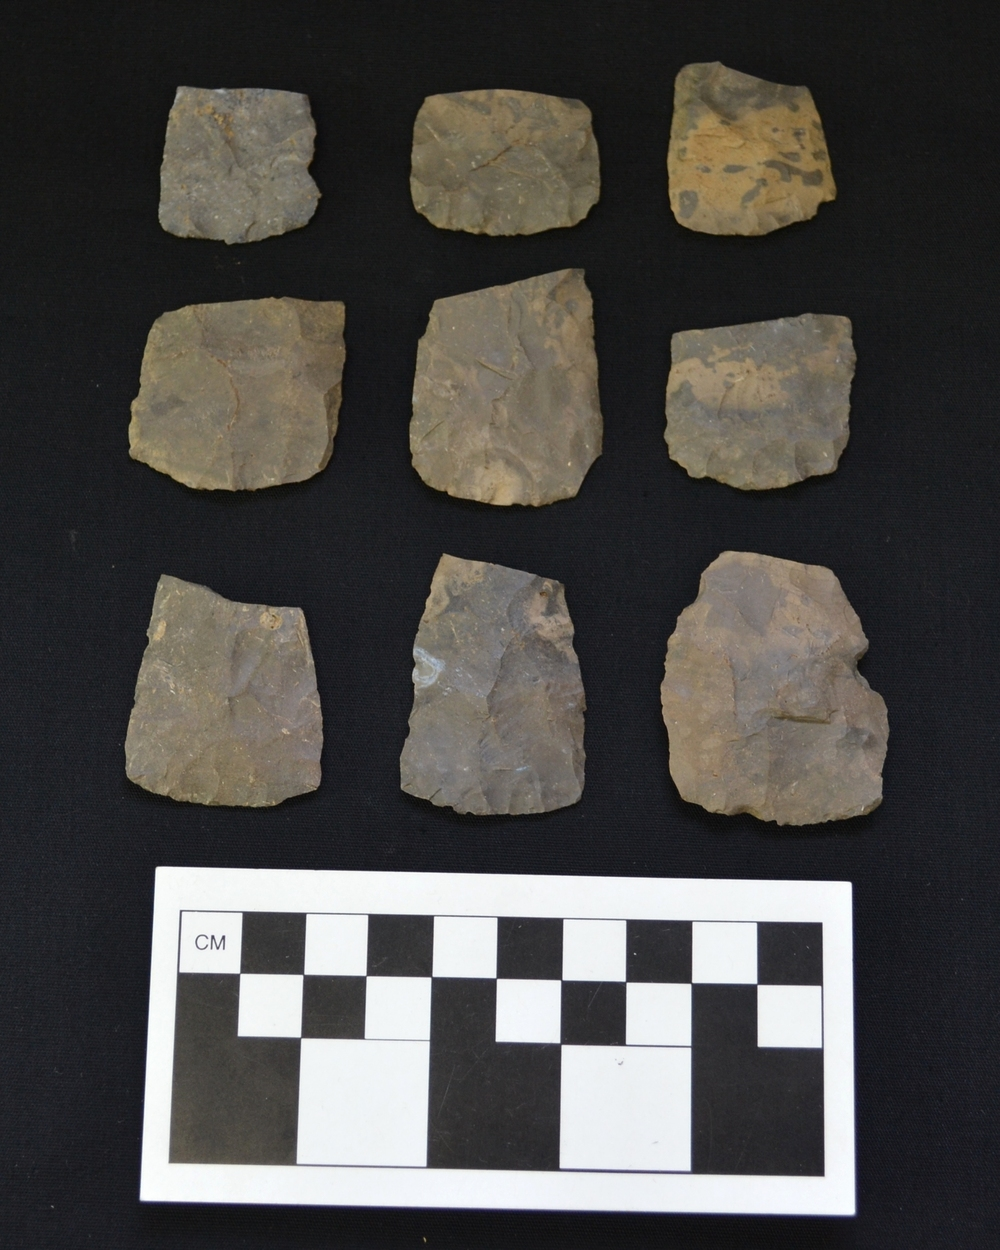 A sample of Onondaga chert, Meadowood cache blade fragments from the Esmond 2 site.